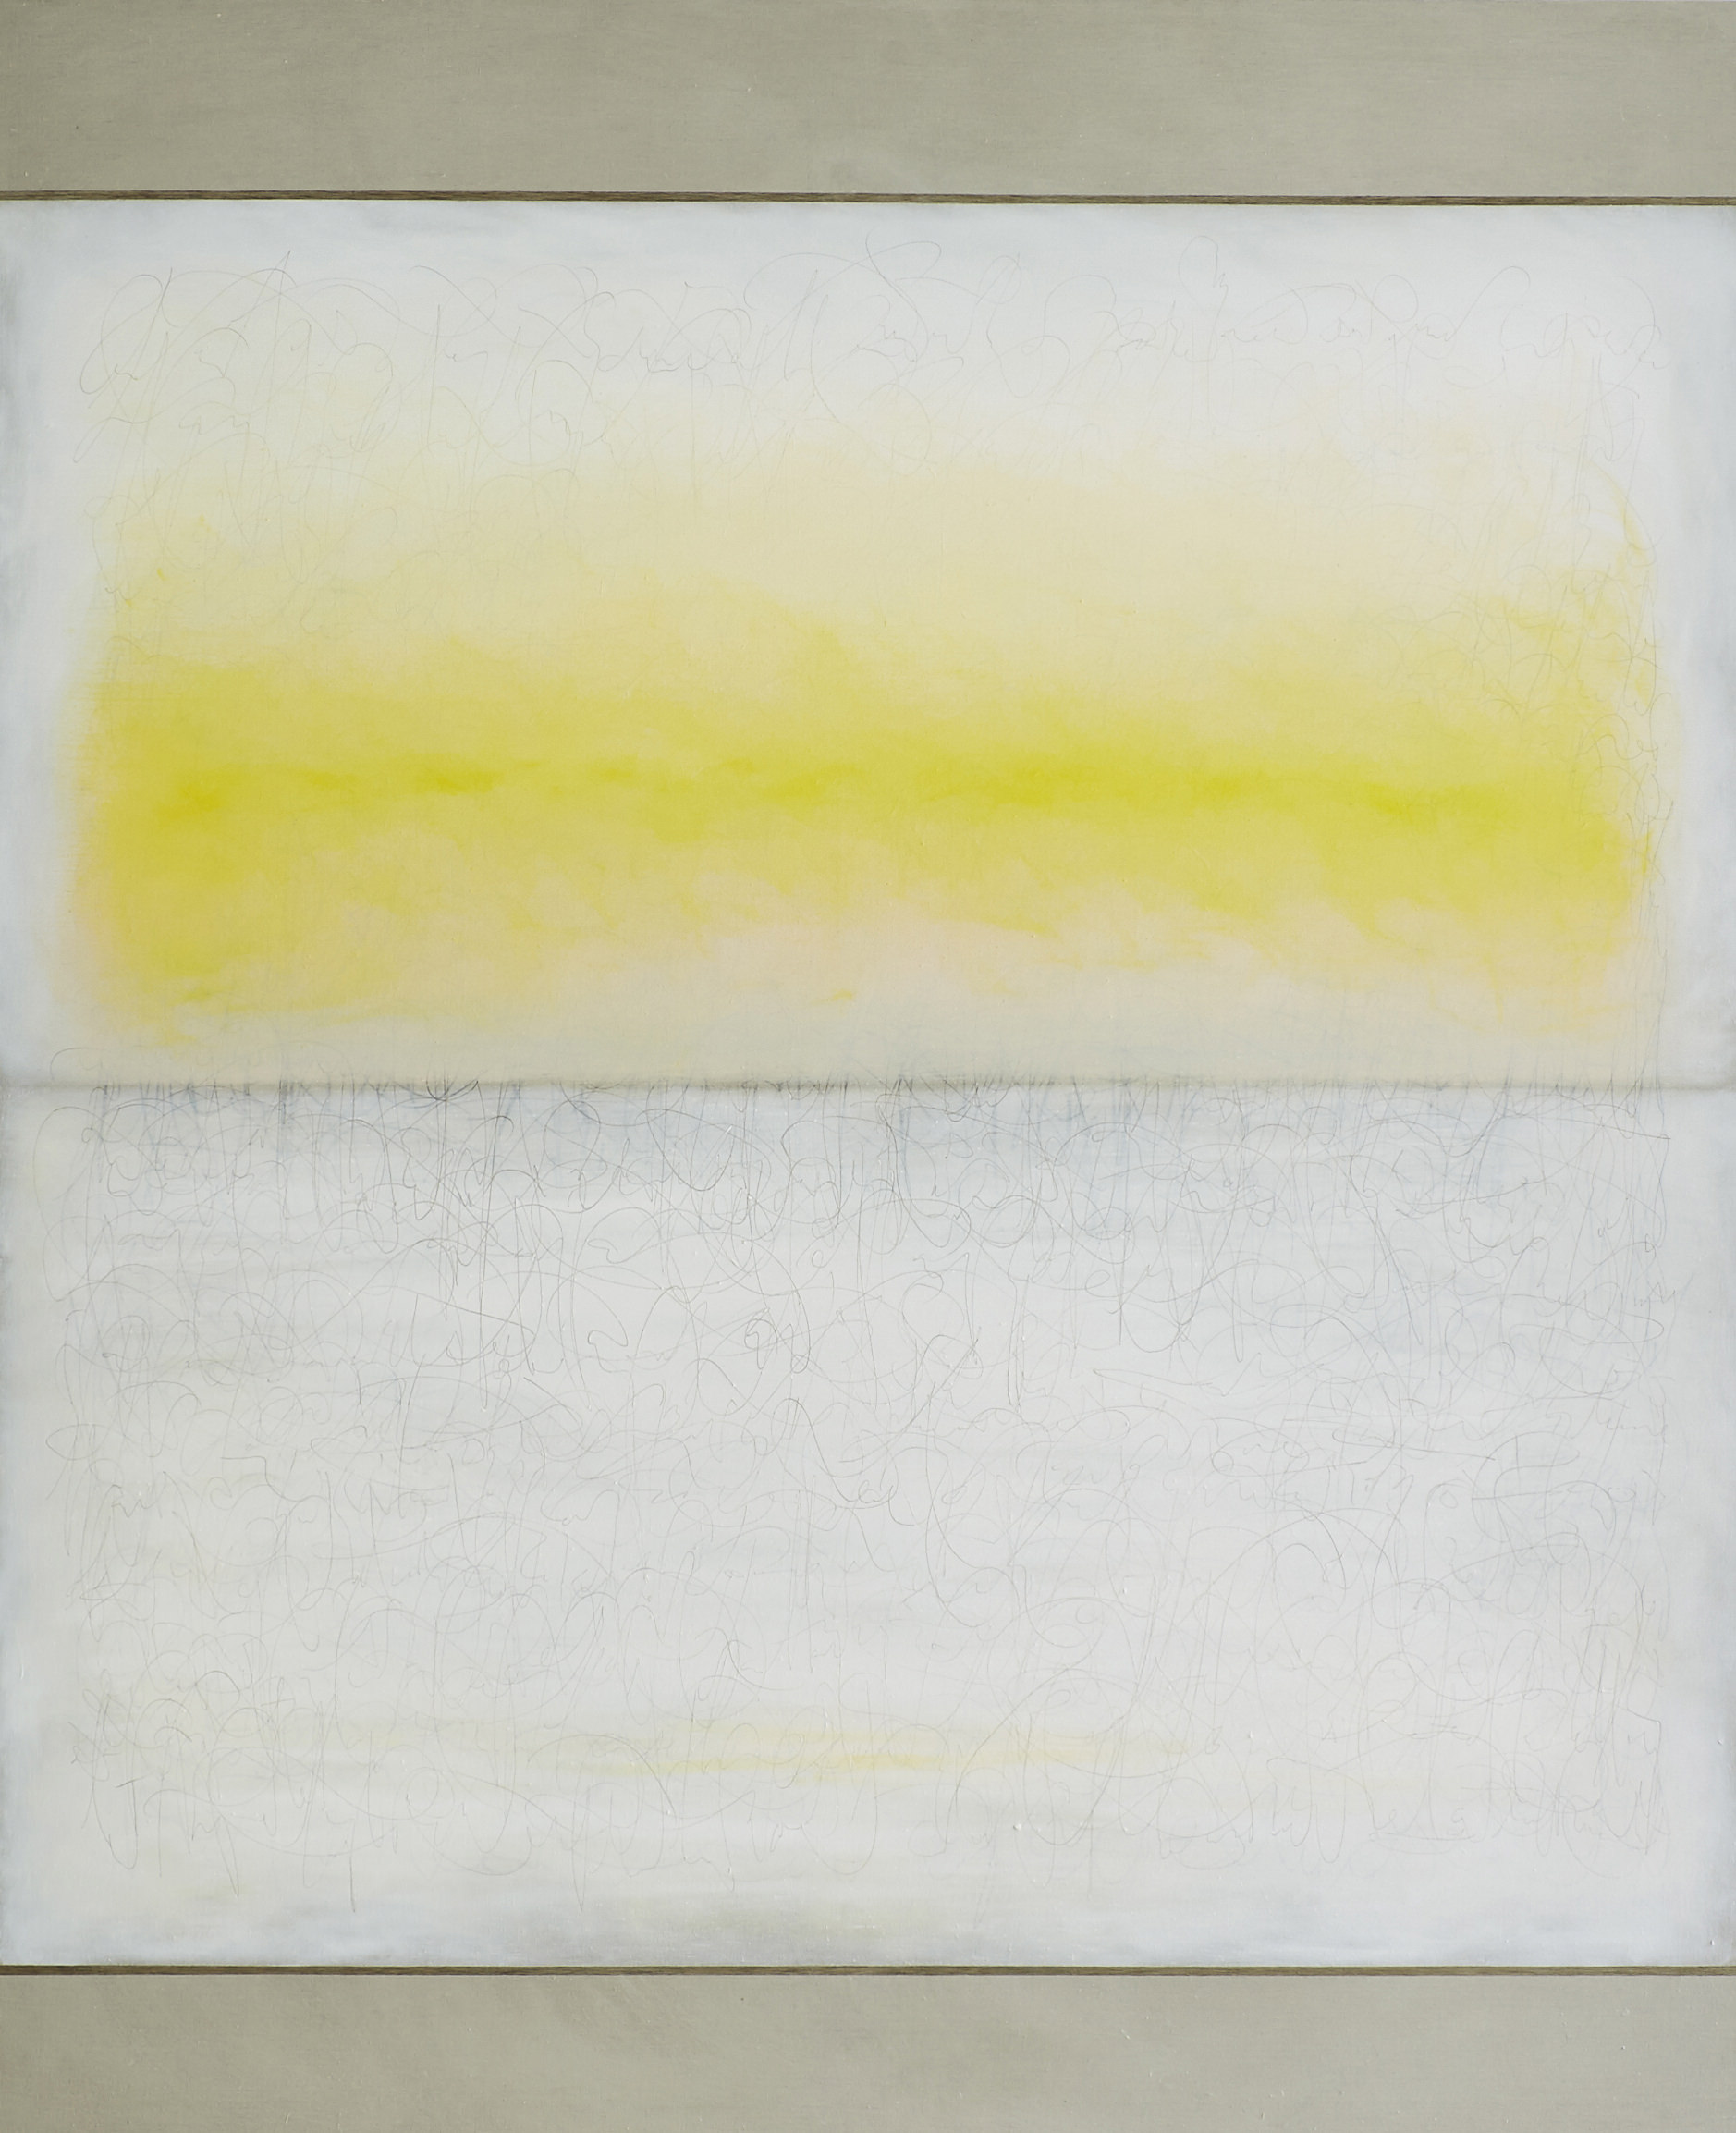 Richard Höglund, Sea Picture LVIII (Primary Colours. YELLOW), 2016, silver, tin, lead and oil on linen prepared with bone pulver and marble dust, 226 x 183 cm